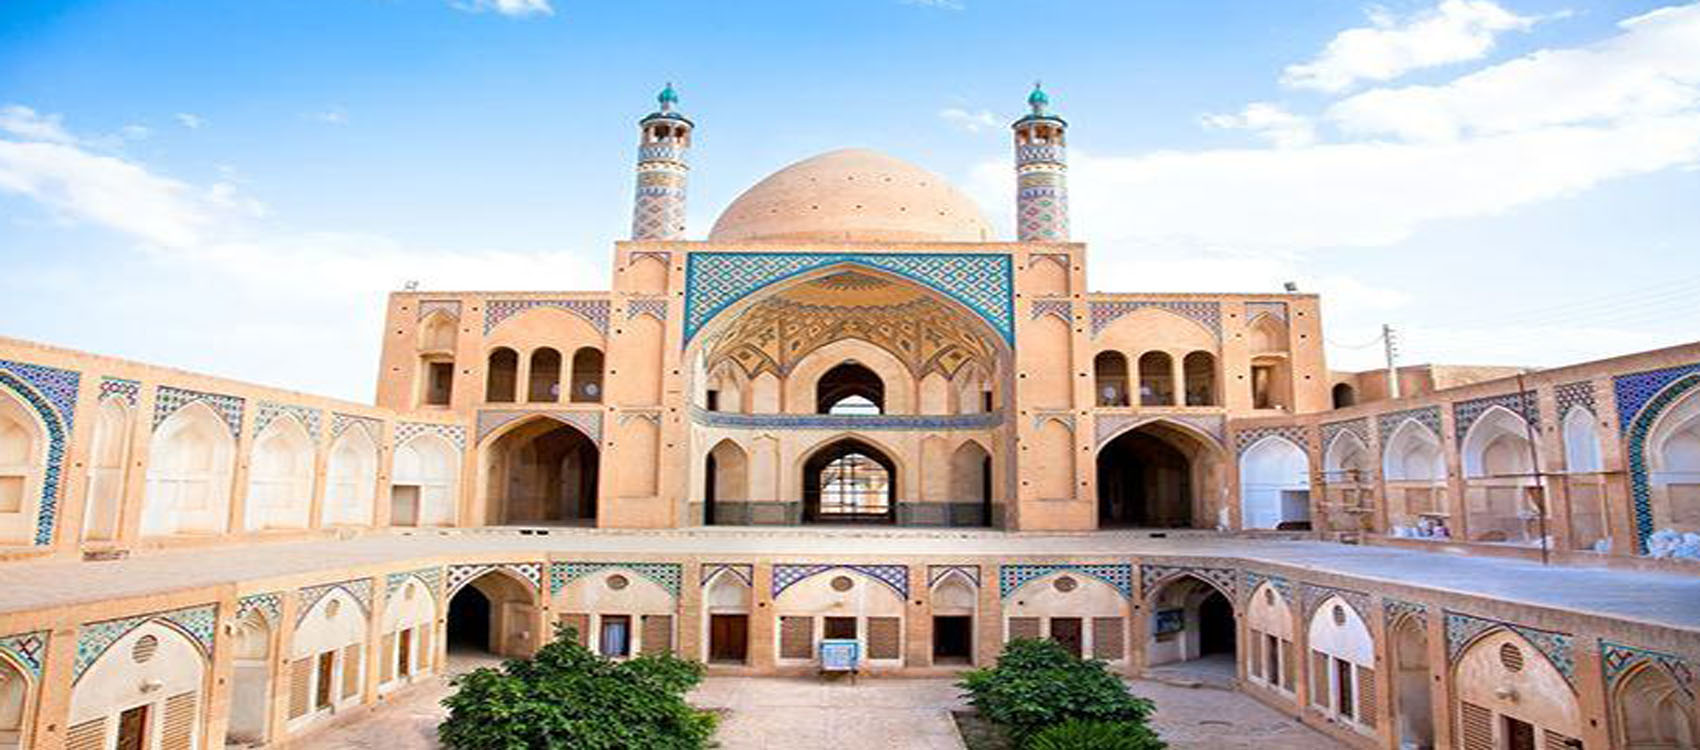 Kashan,Kashan travel guide,Kashan tourist attractions,Kashan Sight seeing,Tabatabei house,Abyaneh Village, Kashan Bazaar,Kashan hotels,kashan tours,journeytoiran